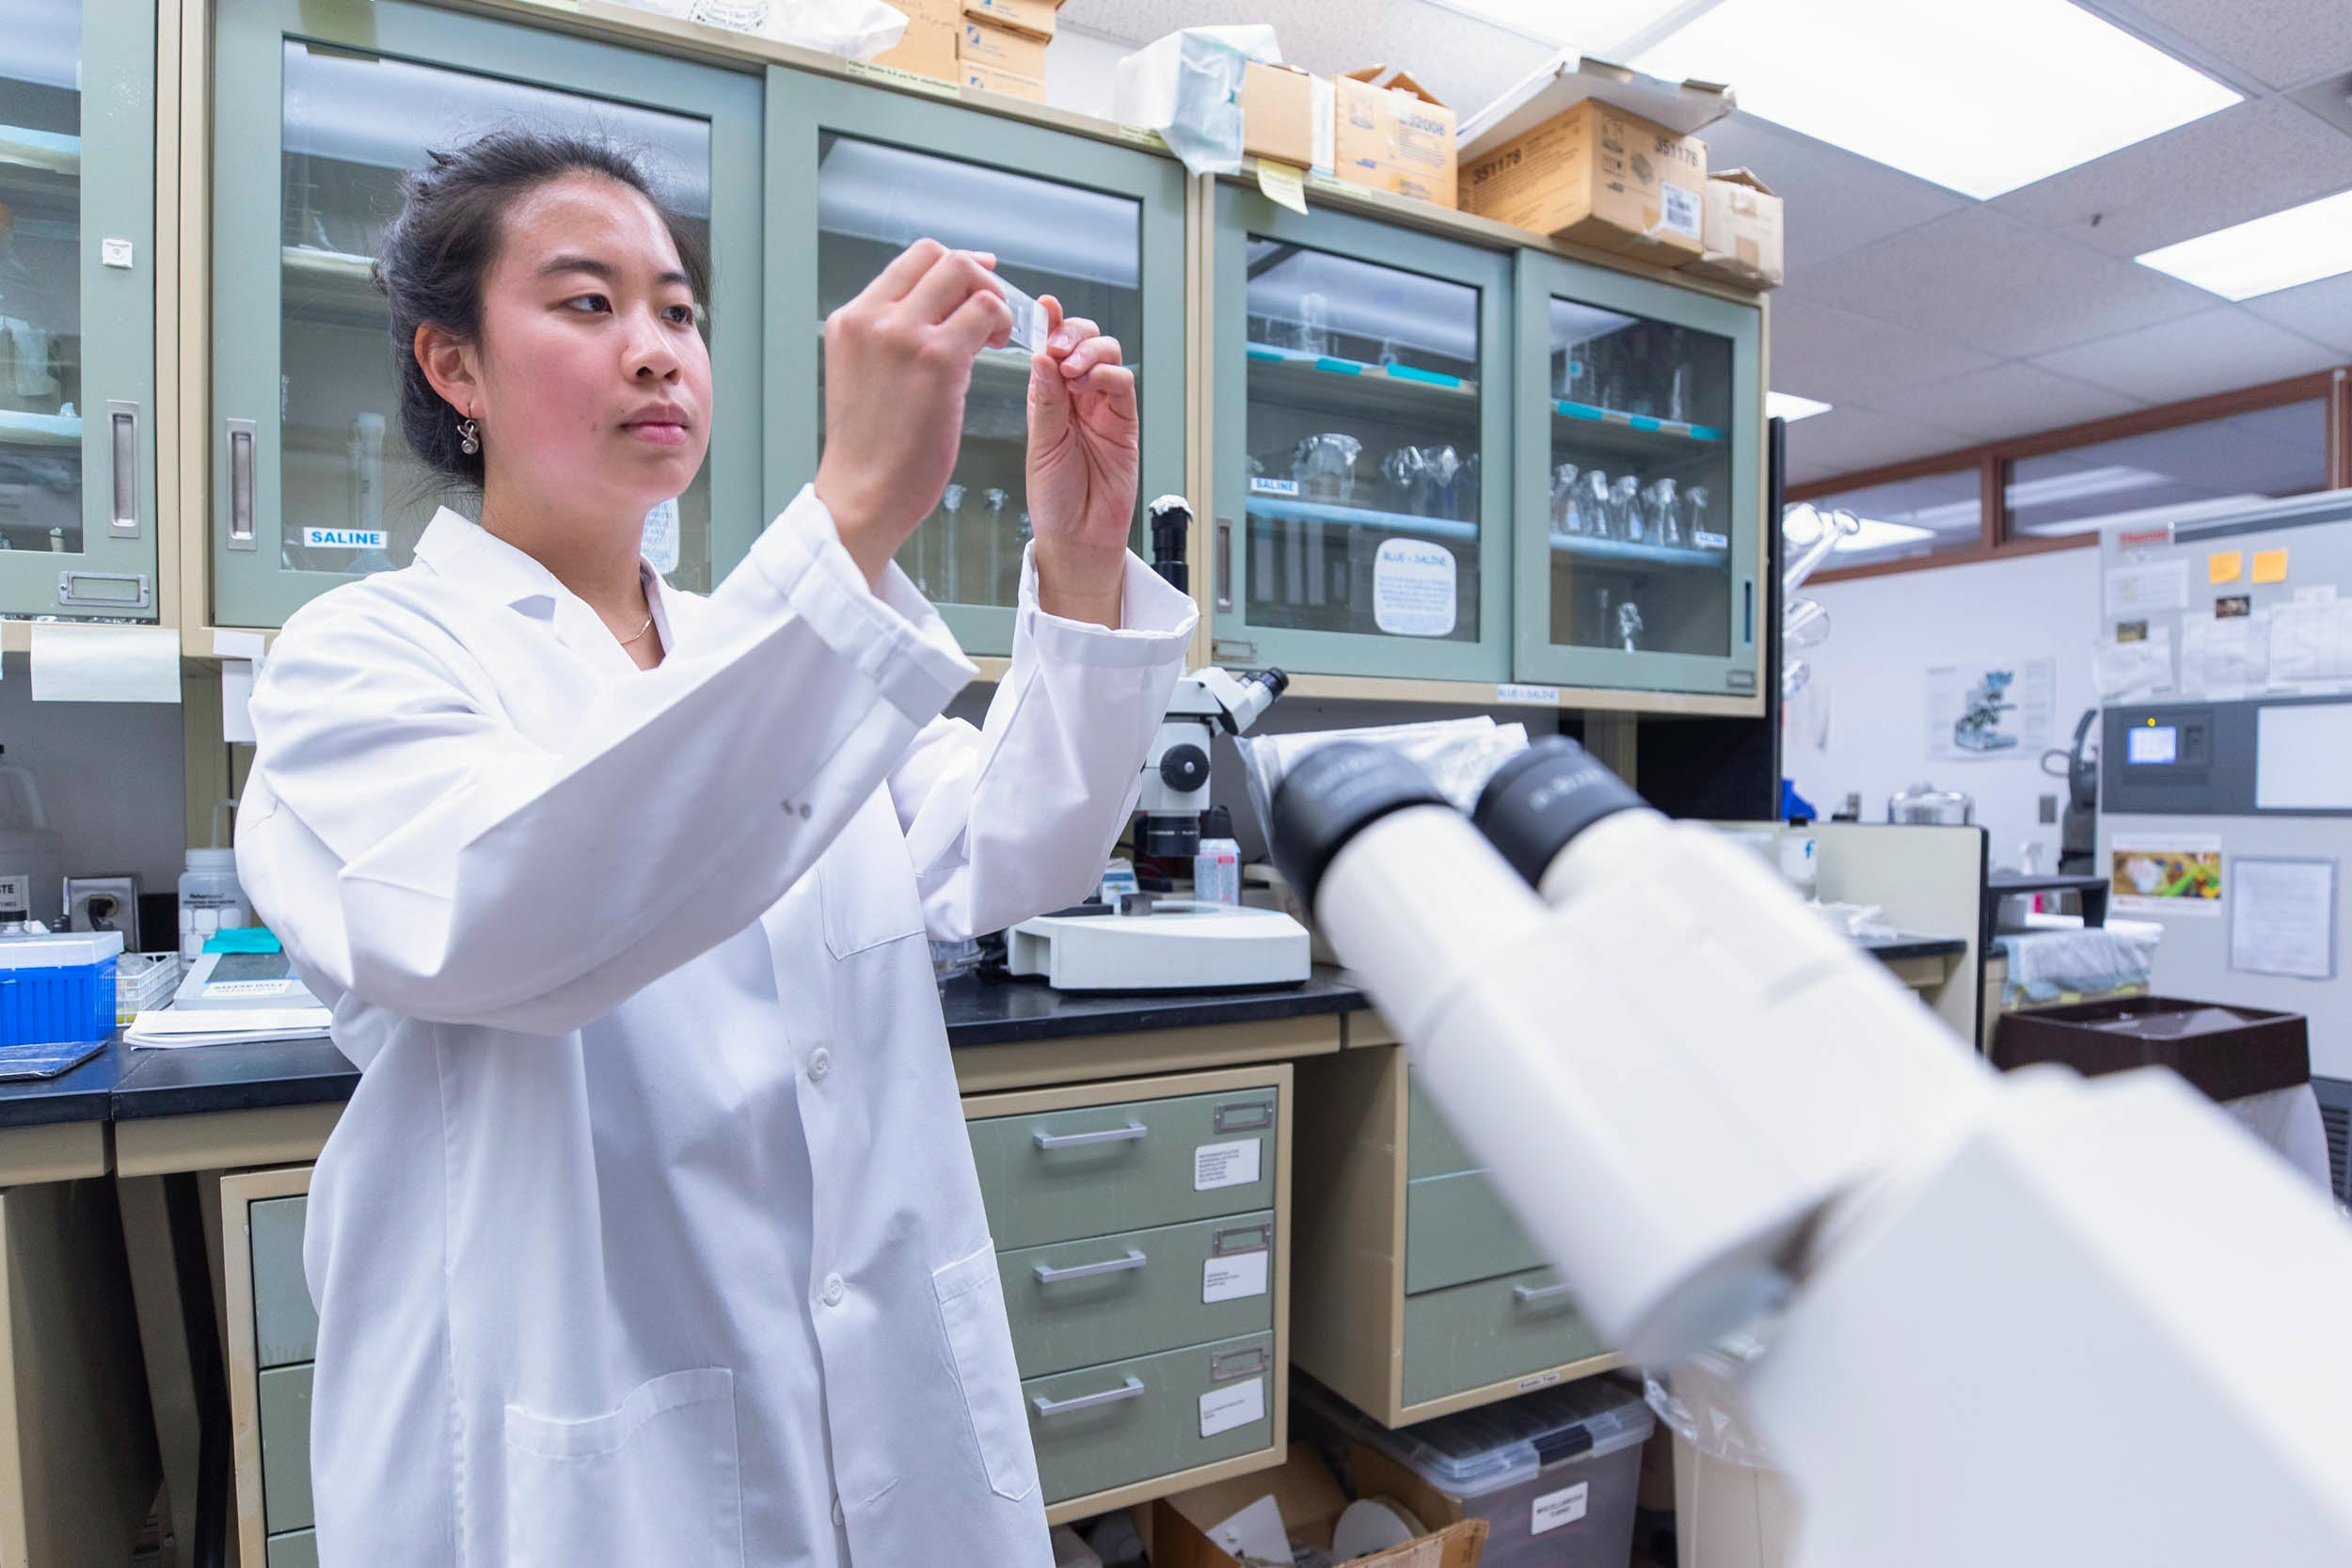 Christina Kim has conducted hearing research in the lab of neuroscientist Jeff Corwin.